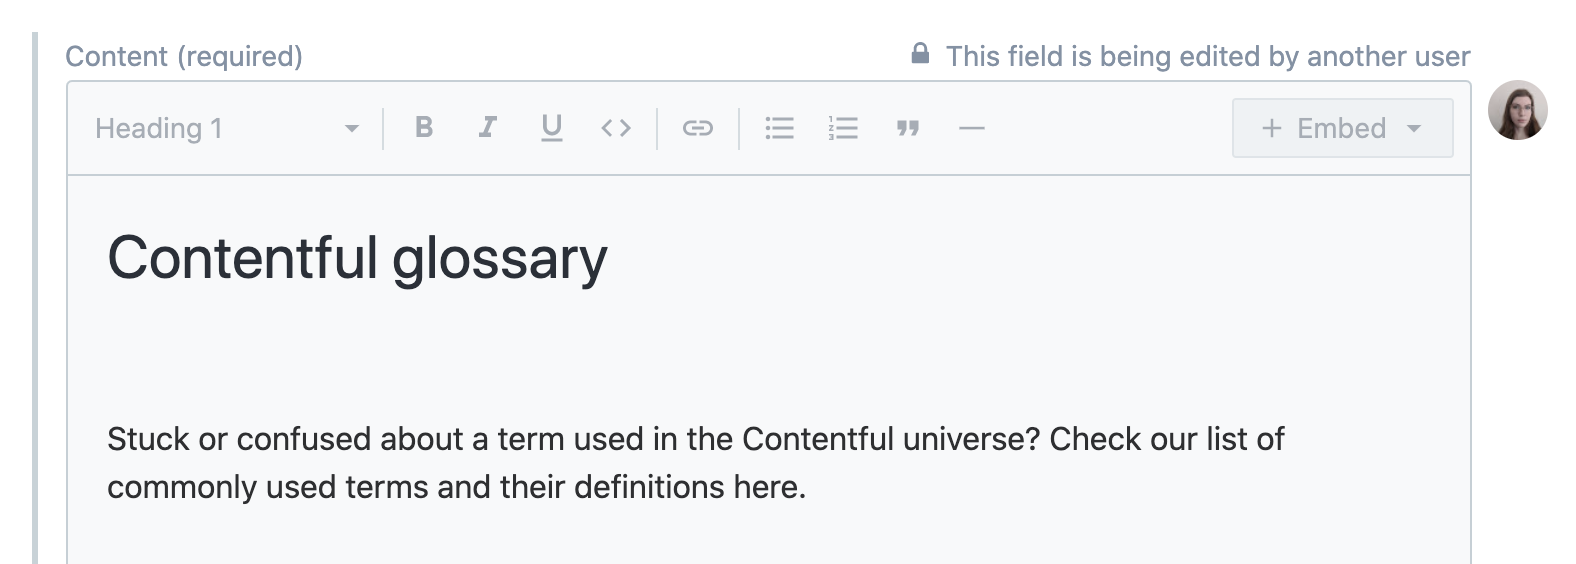 The final result of the Contentful glossary